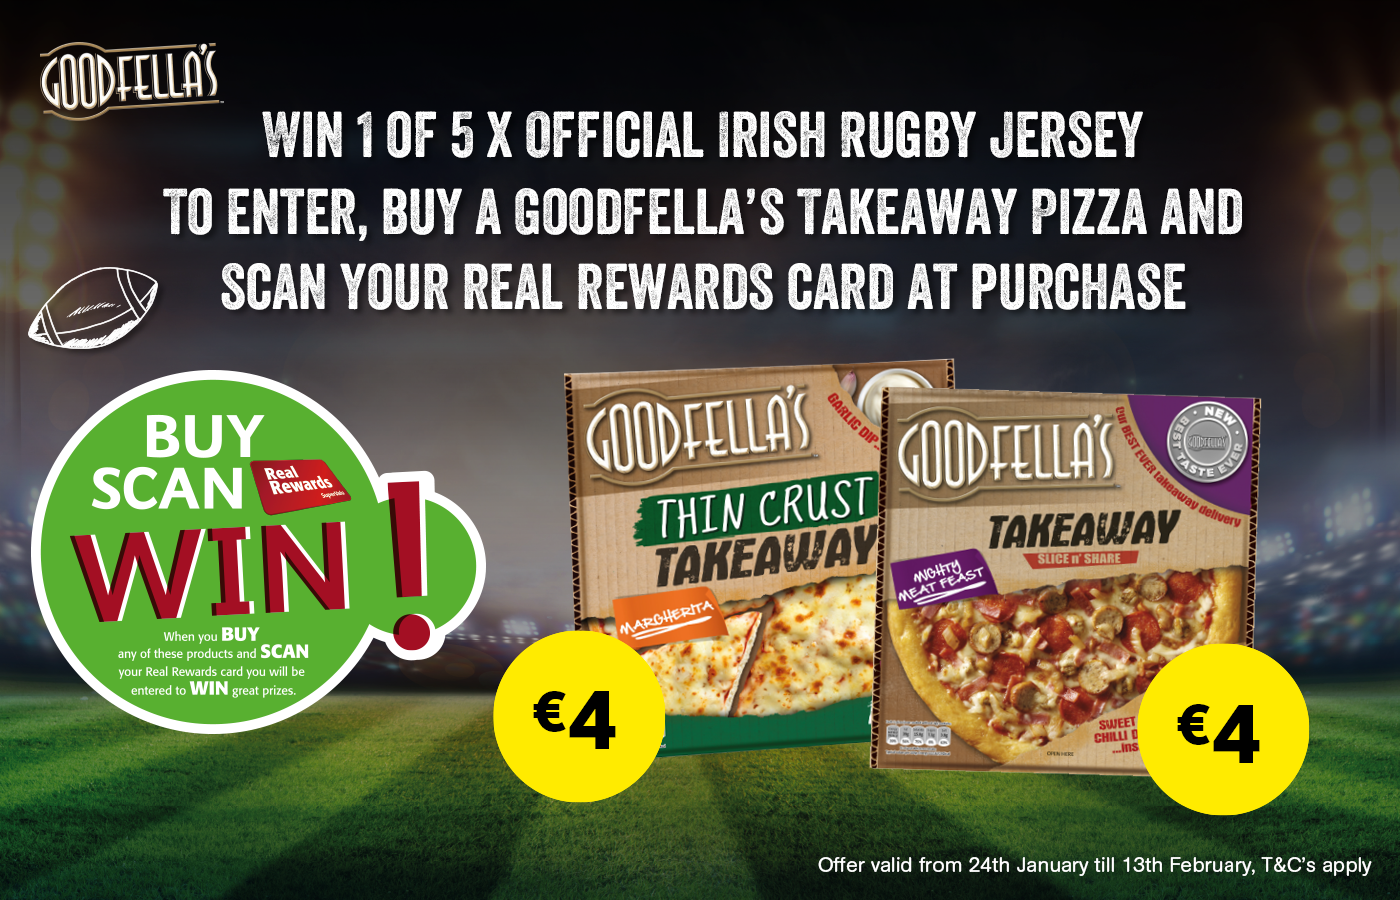 Be in with the chance of winning an Official Irish Rugby Jersey!